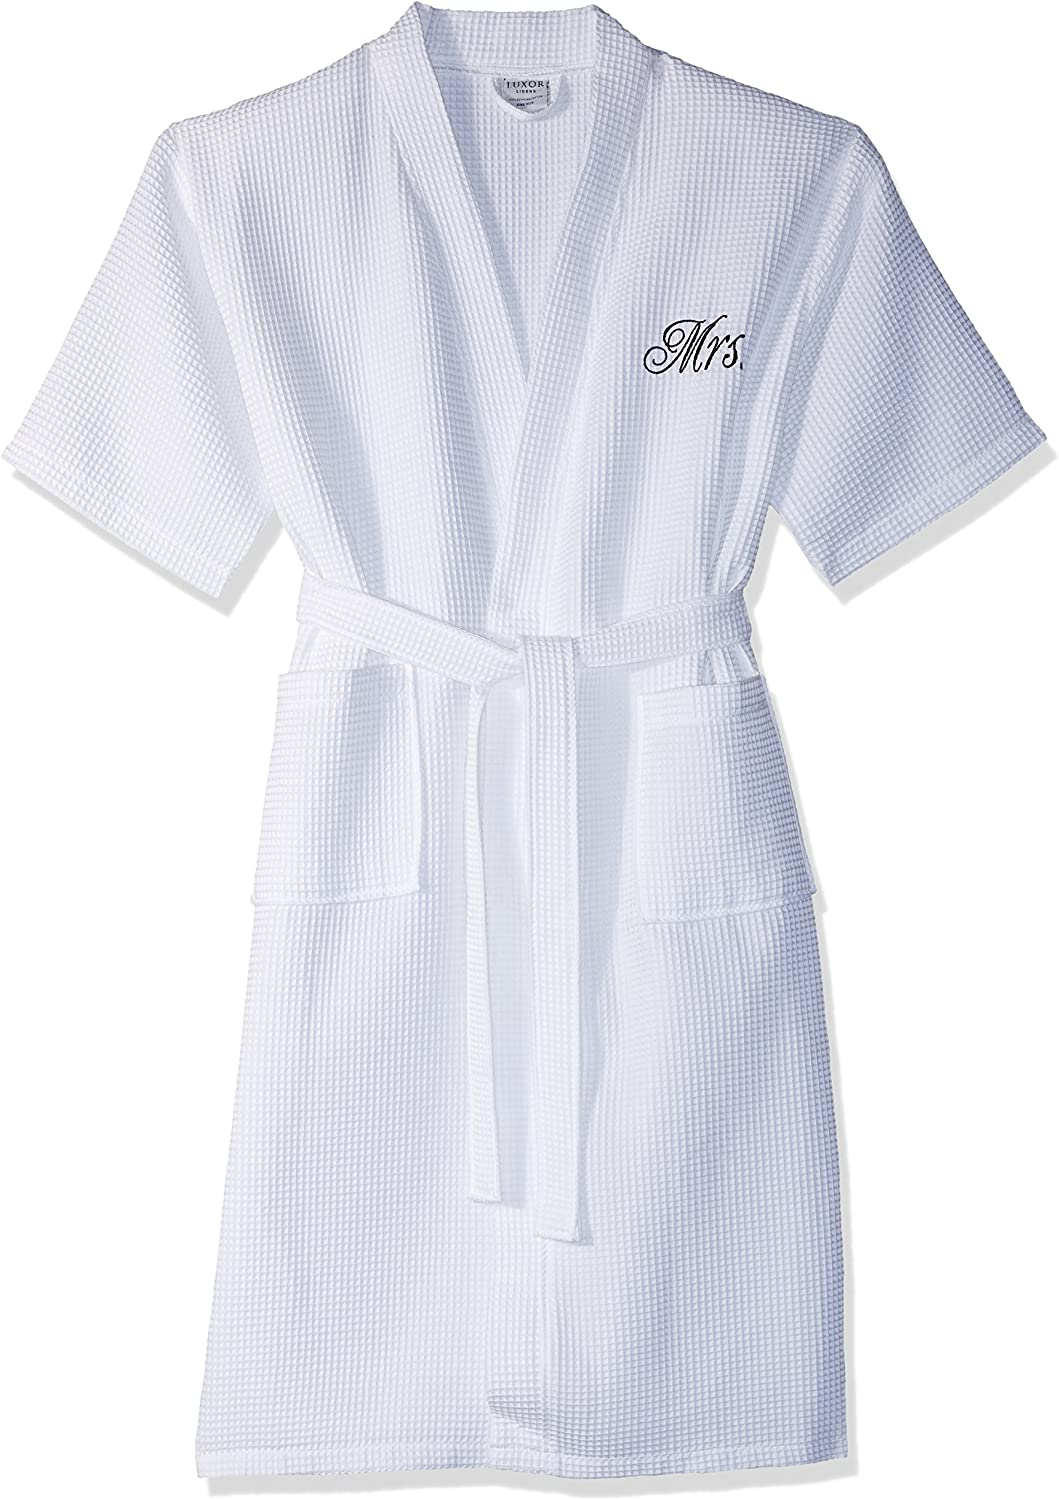 Mr. Safety and trust Waffle Weave Bathrobe - 100% Ranking TOP13 Si Egyptian Cotton Unisex One